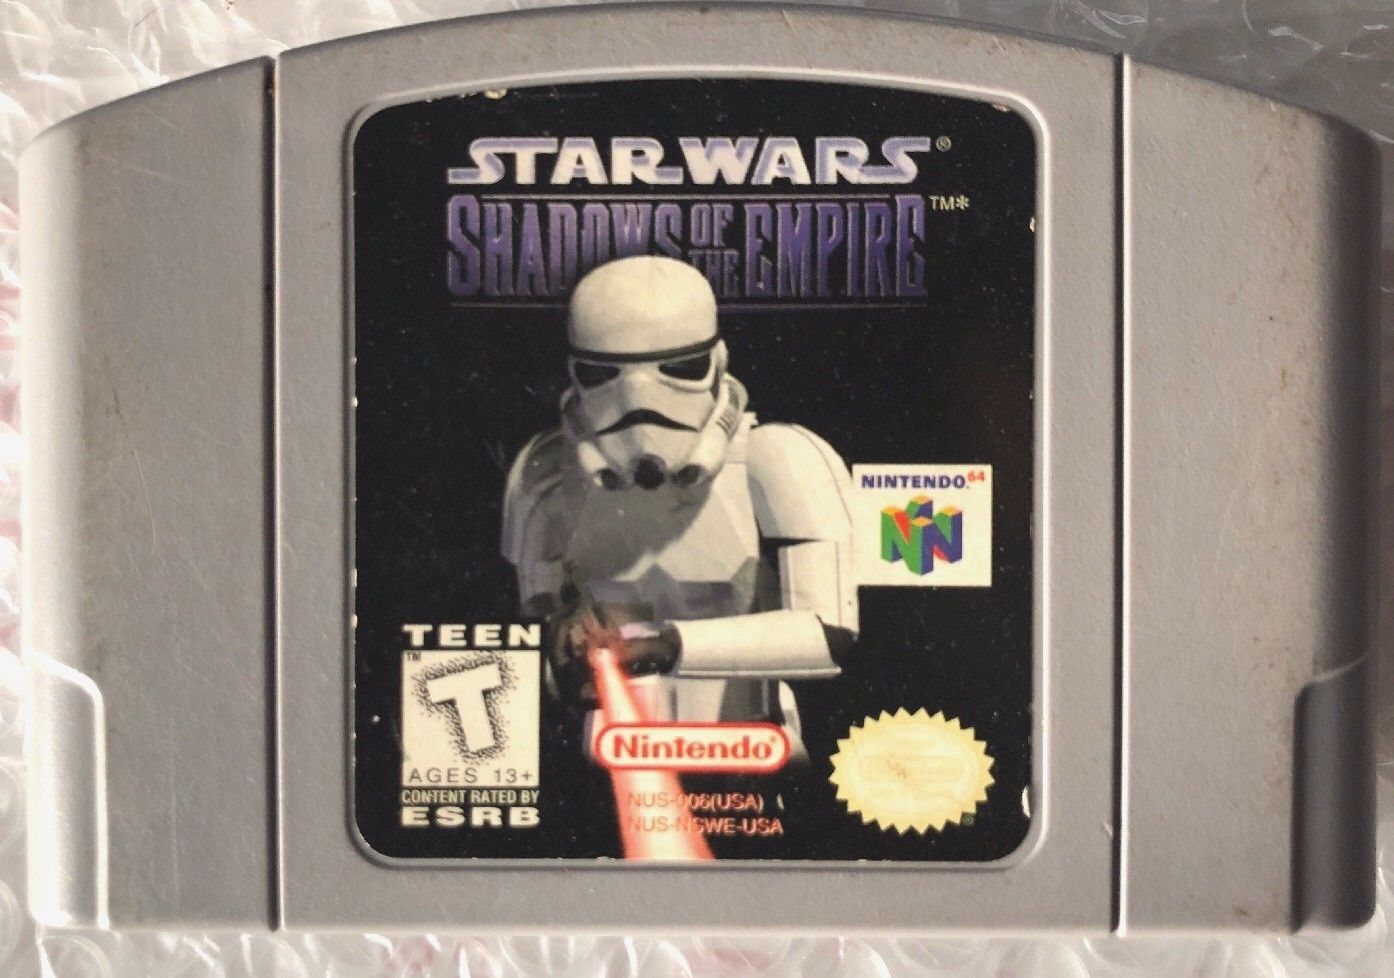 ☆ Star Wars Shadows of the Empire (Nintendo 64 1996) N64 AUTHENTIC Game Cart ☆